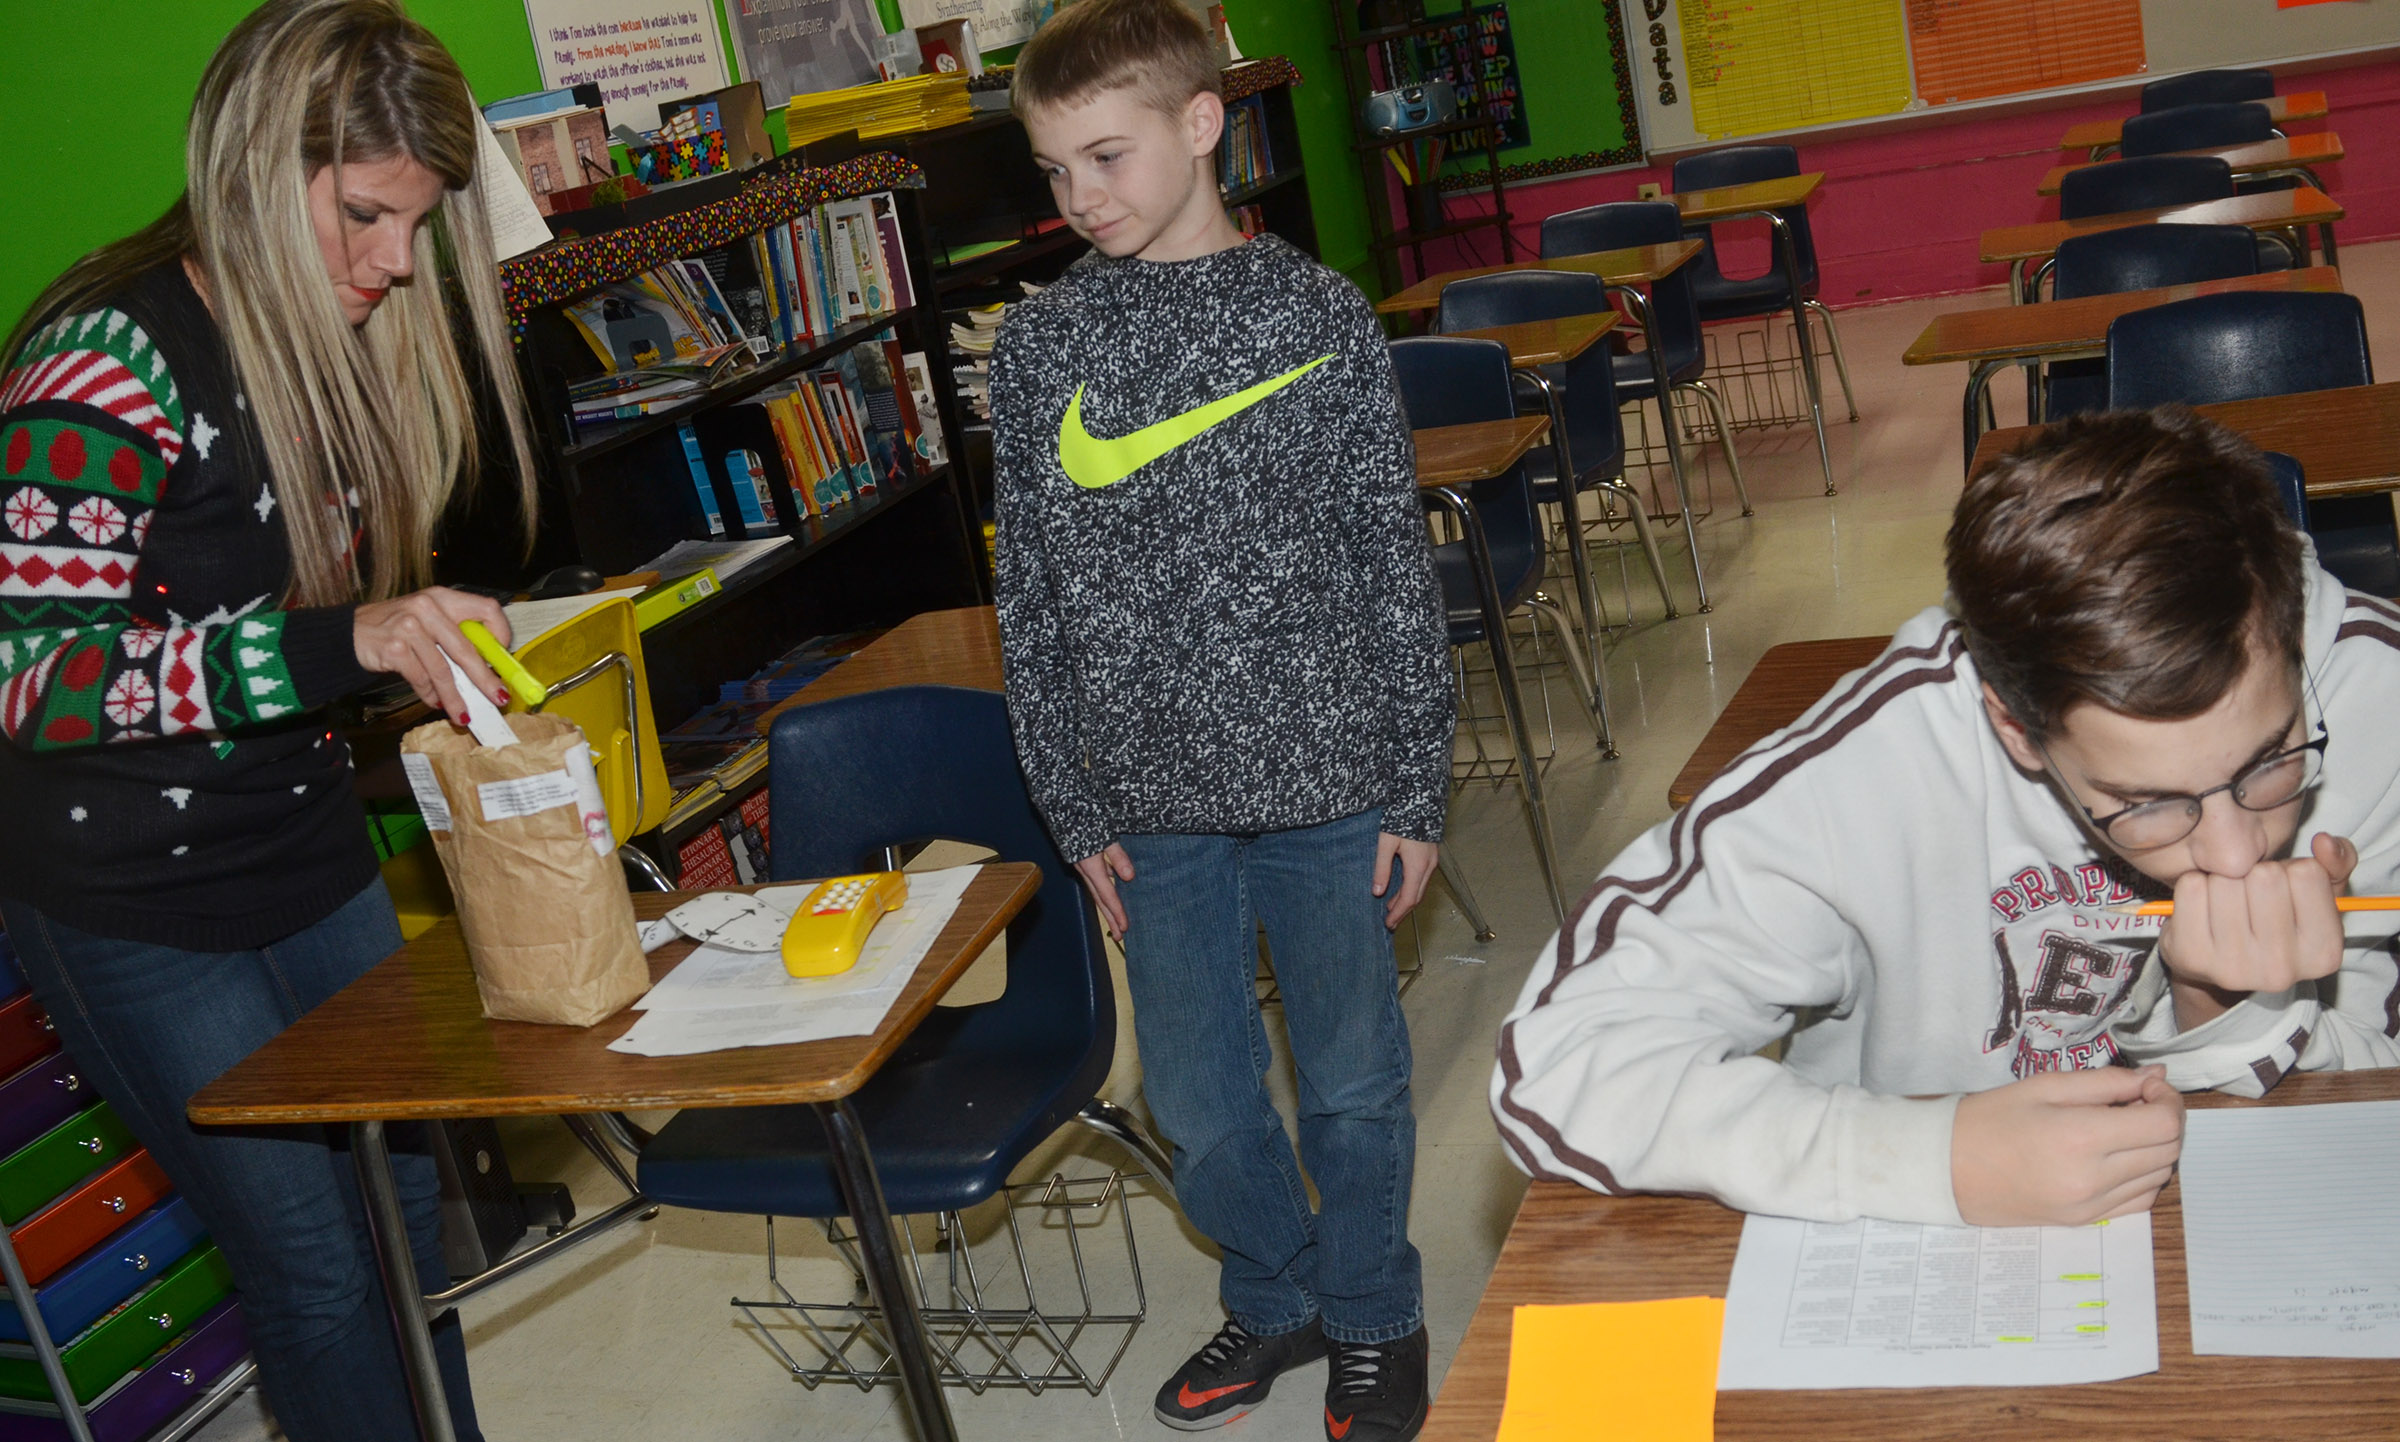 CMS teacher Andrea Gribbins works with sixth-graders Ethan Cox, at left, and Dalton Morris on their assignments.